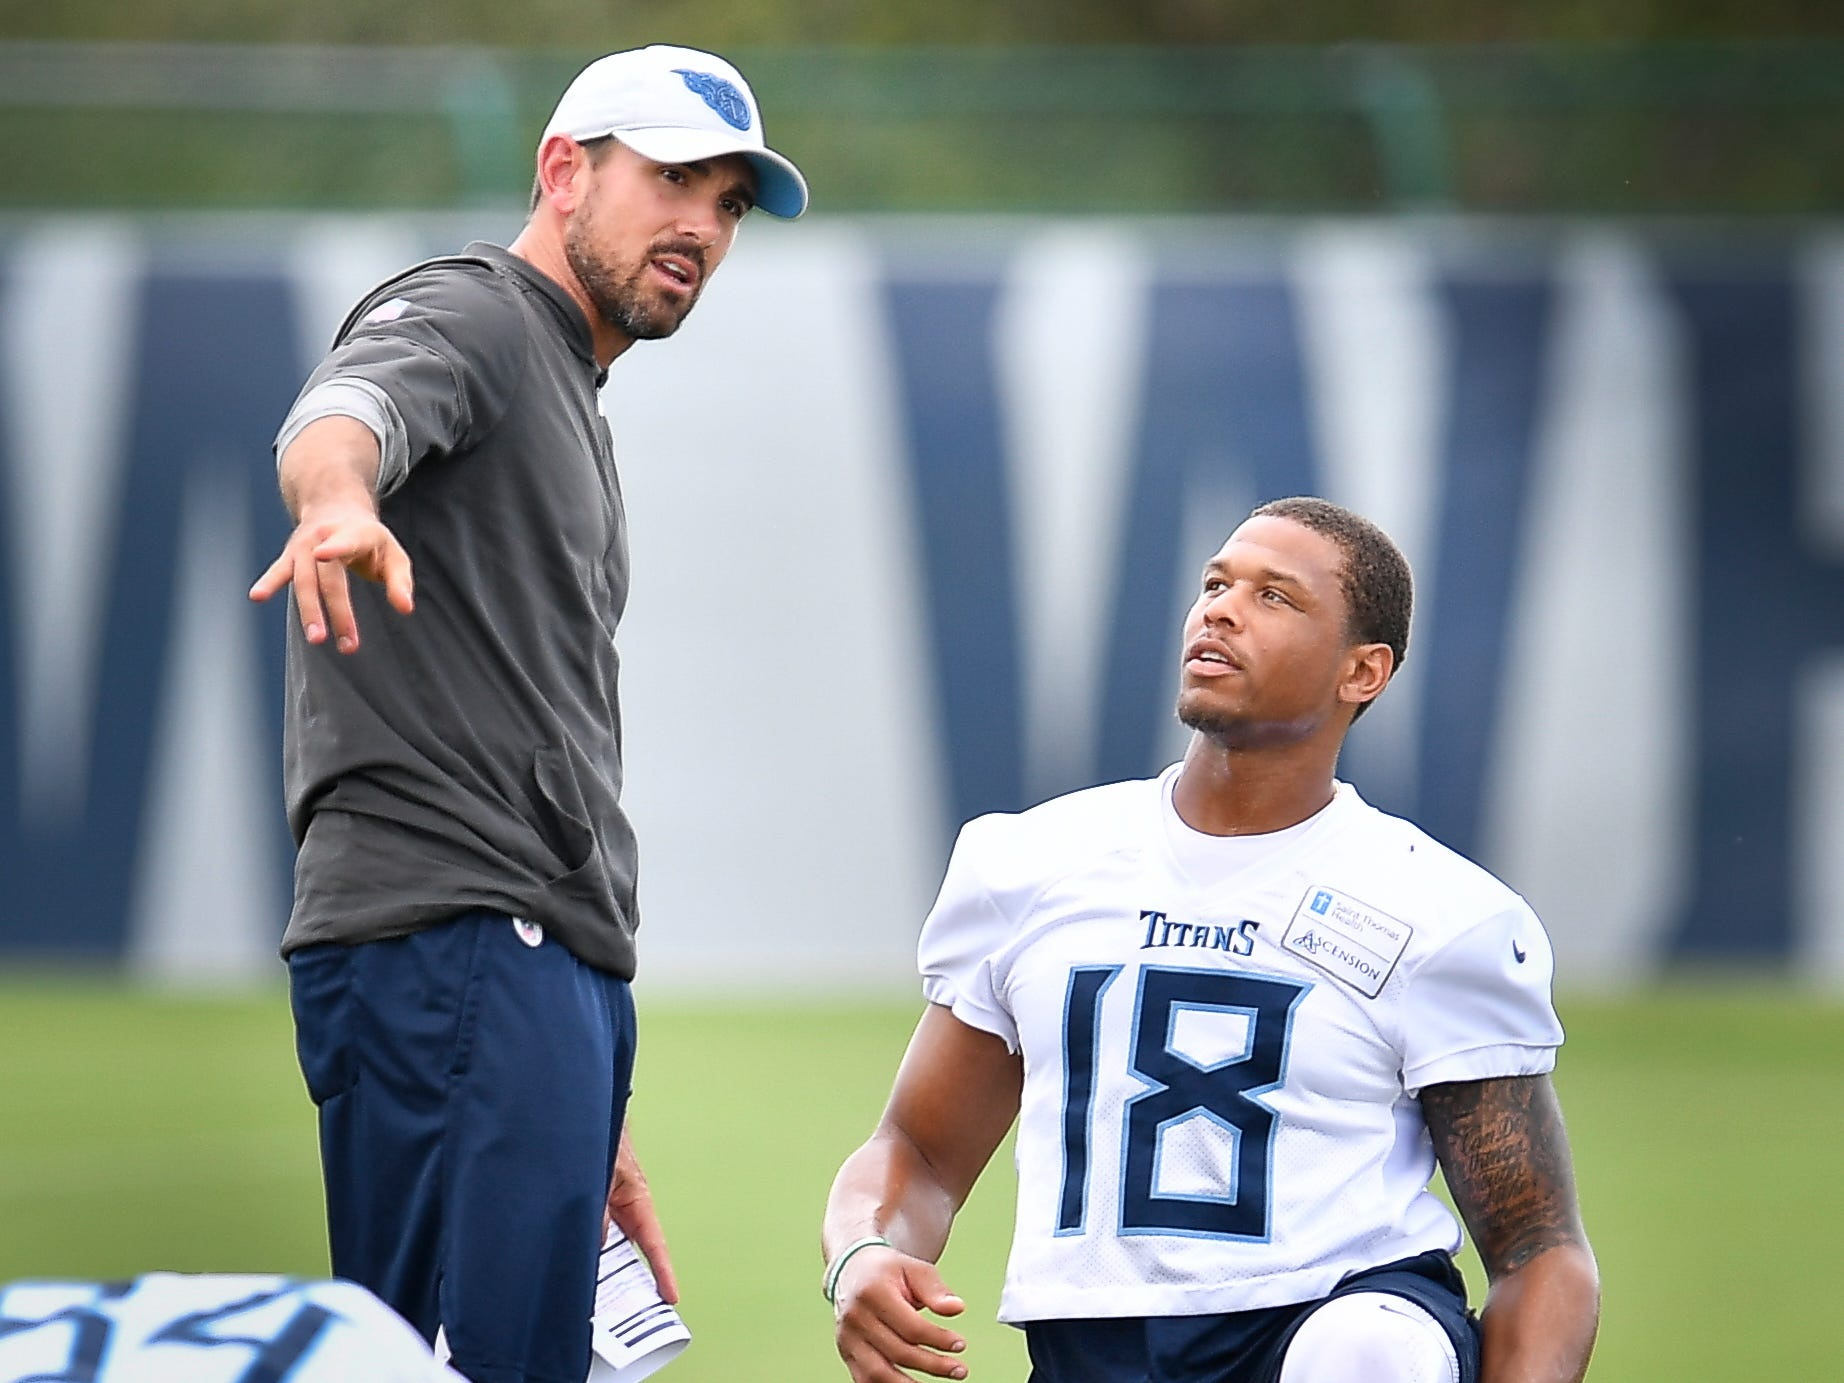 Tennessee Titans wide receiver Rishard Matthews (18) talks with offensive coordinator Matt LaFleur as he warms up before practice at Saint Thomas Sports Park Friday, Sept. 7, 2018, in Nashville, Tenn.